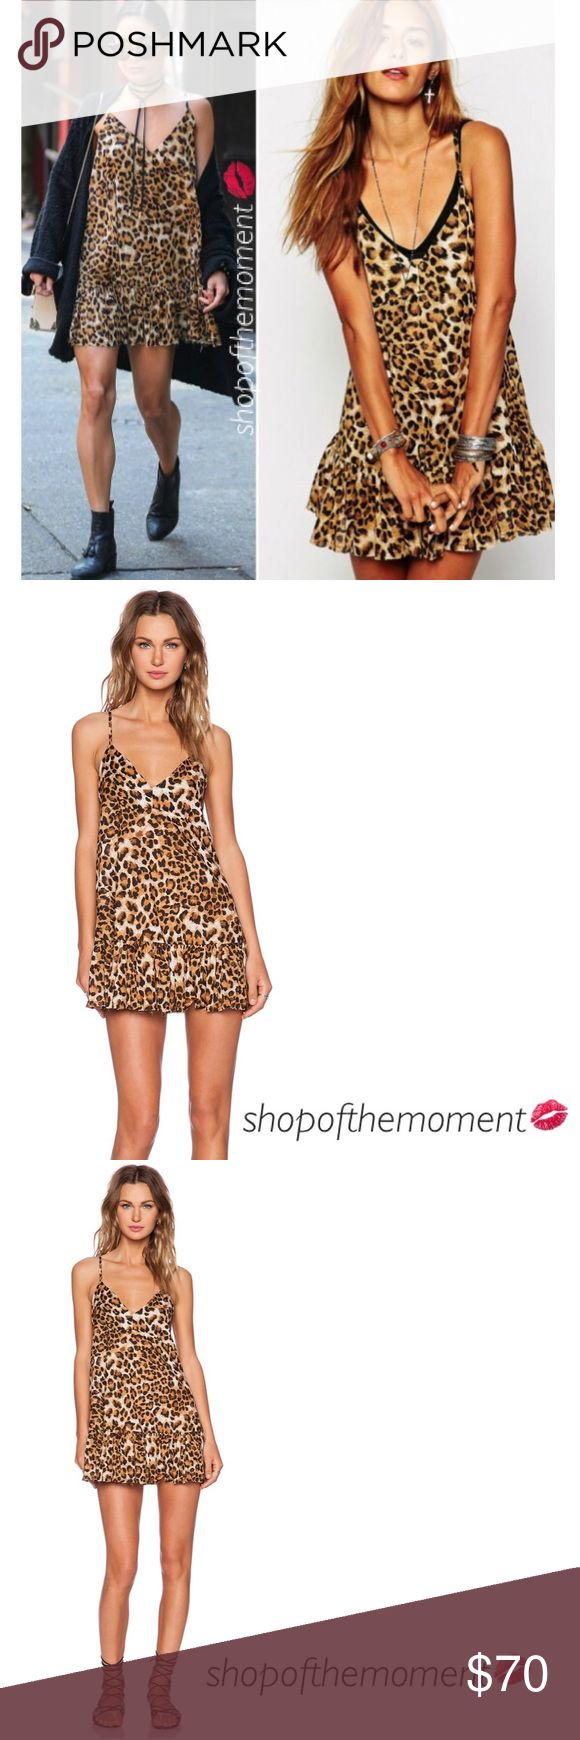 """💫🆕 Vanessa's One Teaspoon Leopard Dress One Teaspoon  Leopard Dress  💫💫💫💫💫💫💫💫💫💫💫💫  🔥 as seen on Vanessa Hudgens 🔥            🔥 as seen on asos 🔥  This stunning celebrity style dress features a drop waist for a relaxed, flowy fit. Fully adjustable shoulder straps. Soft ruffle through the skirt. Velvety details throughout. Perfectly fun and bare for festival season.   Approximate Measurements: Length: 33"""" from shoulder  💫💫💫💫💫💫💫💫💫💫💫💫  ✗ Drama ✗ Trades ⚡️Fast…"""